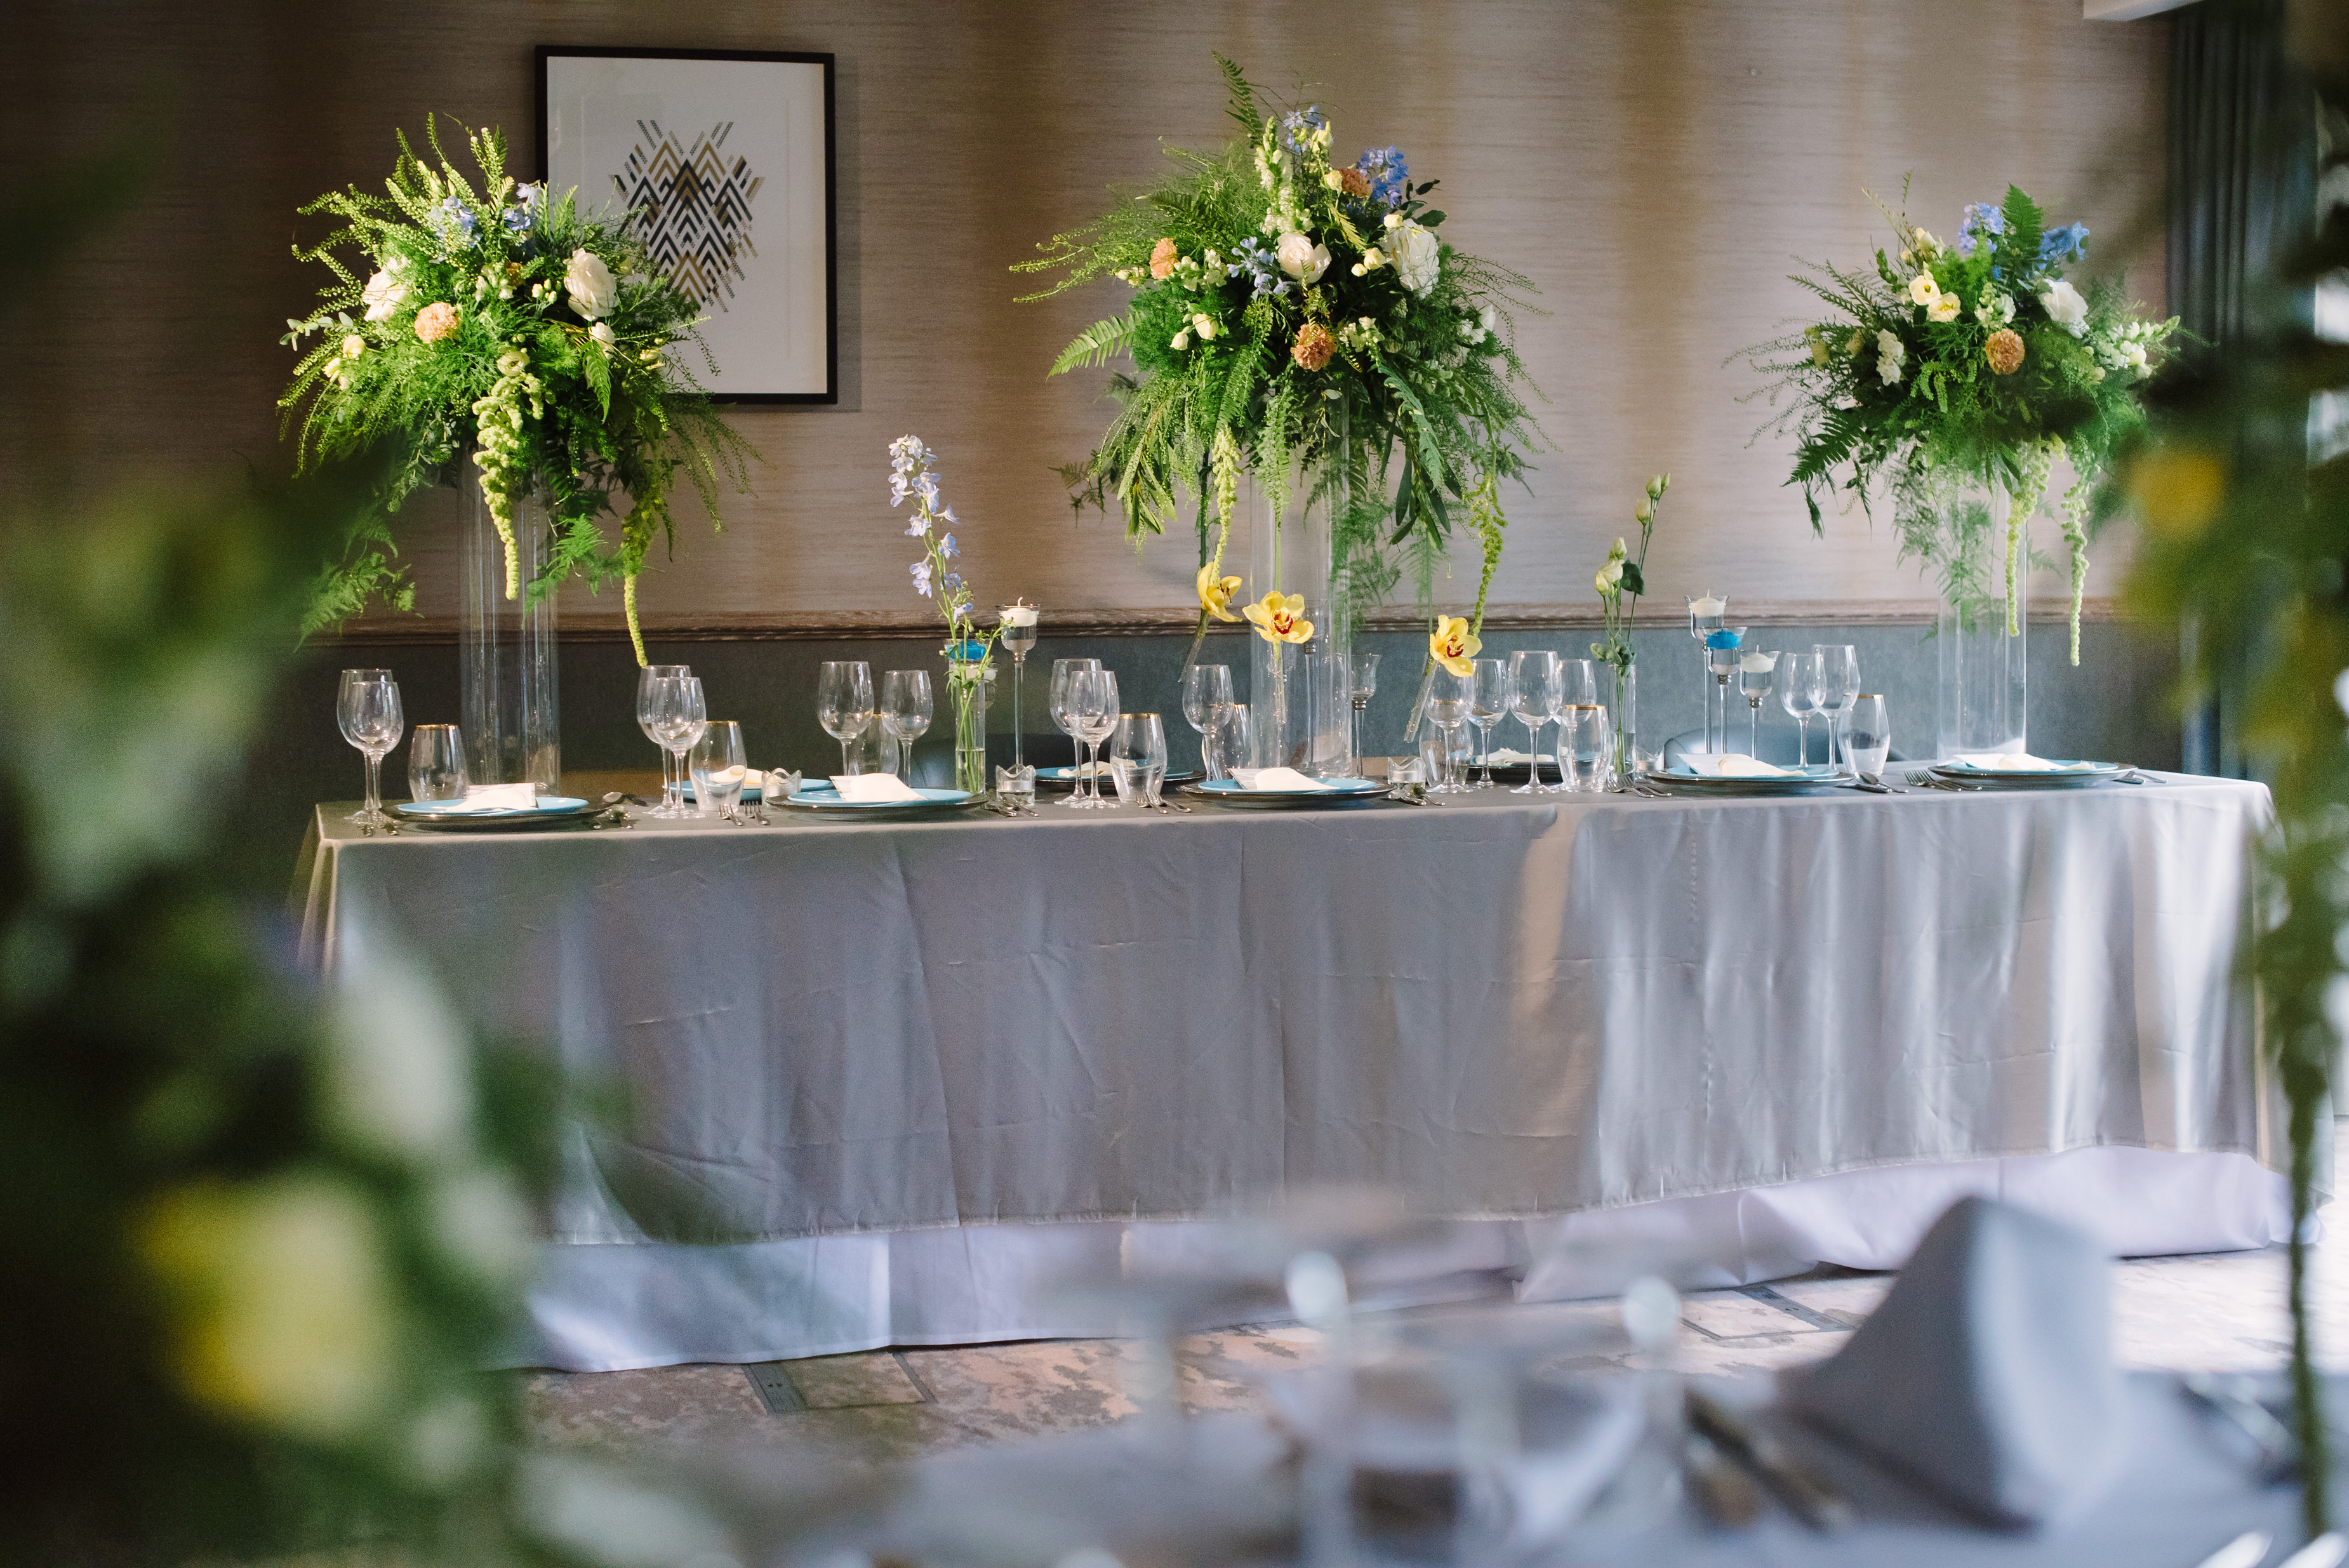 Tall table arrangements